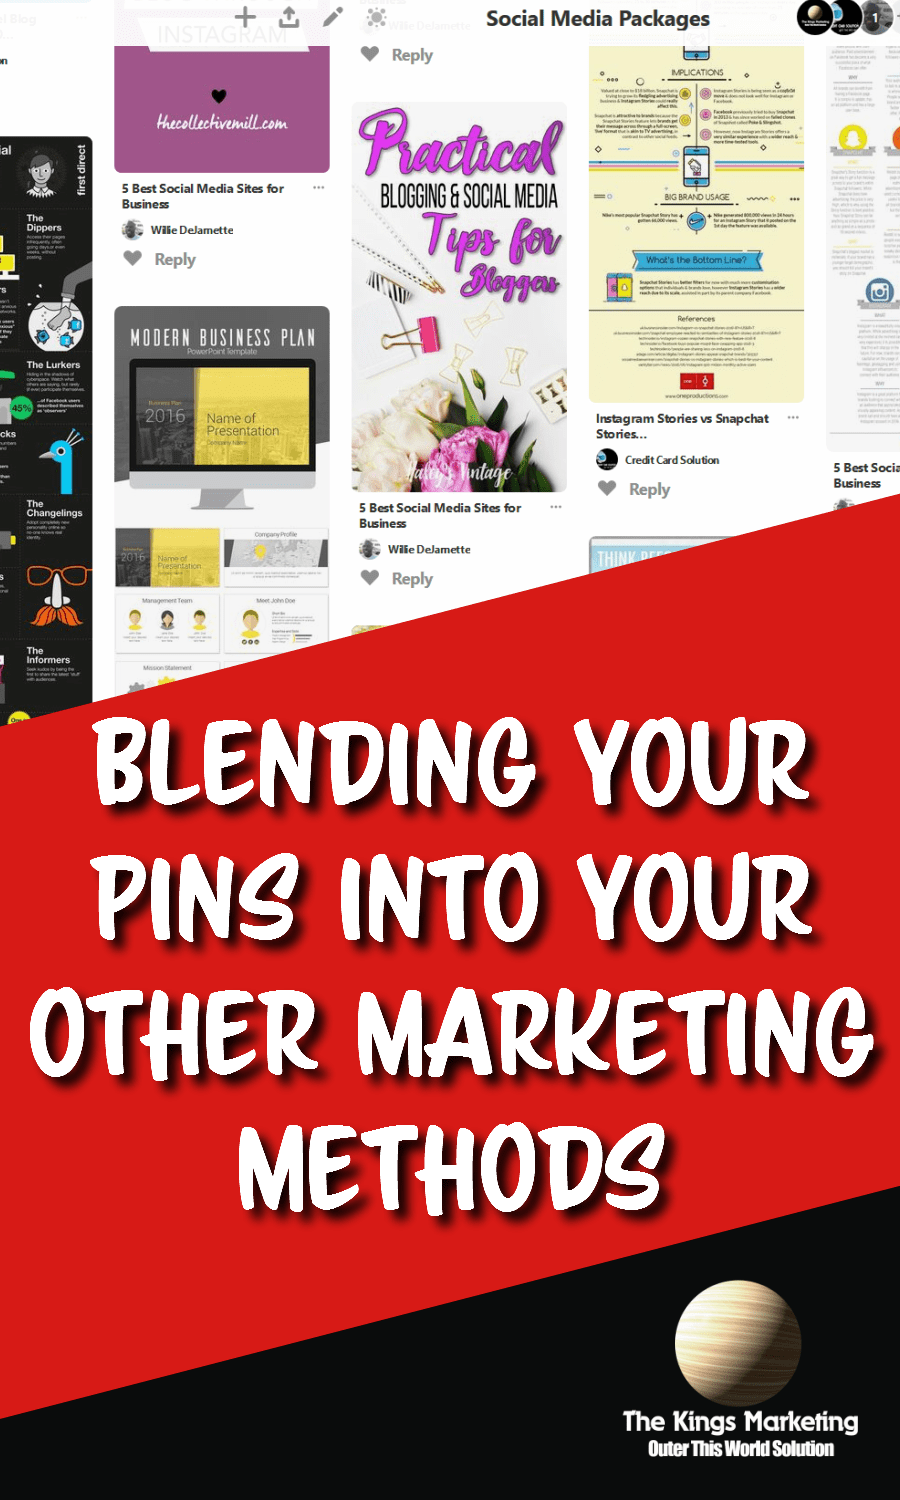 Blending Your Pins into Your Other Marketing Methods